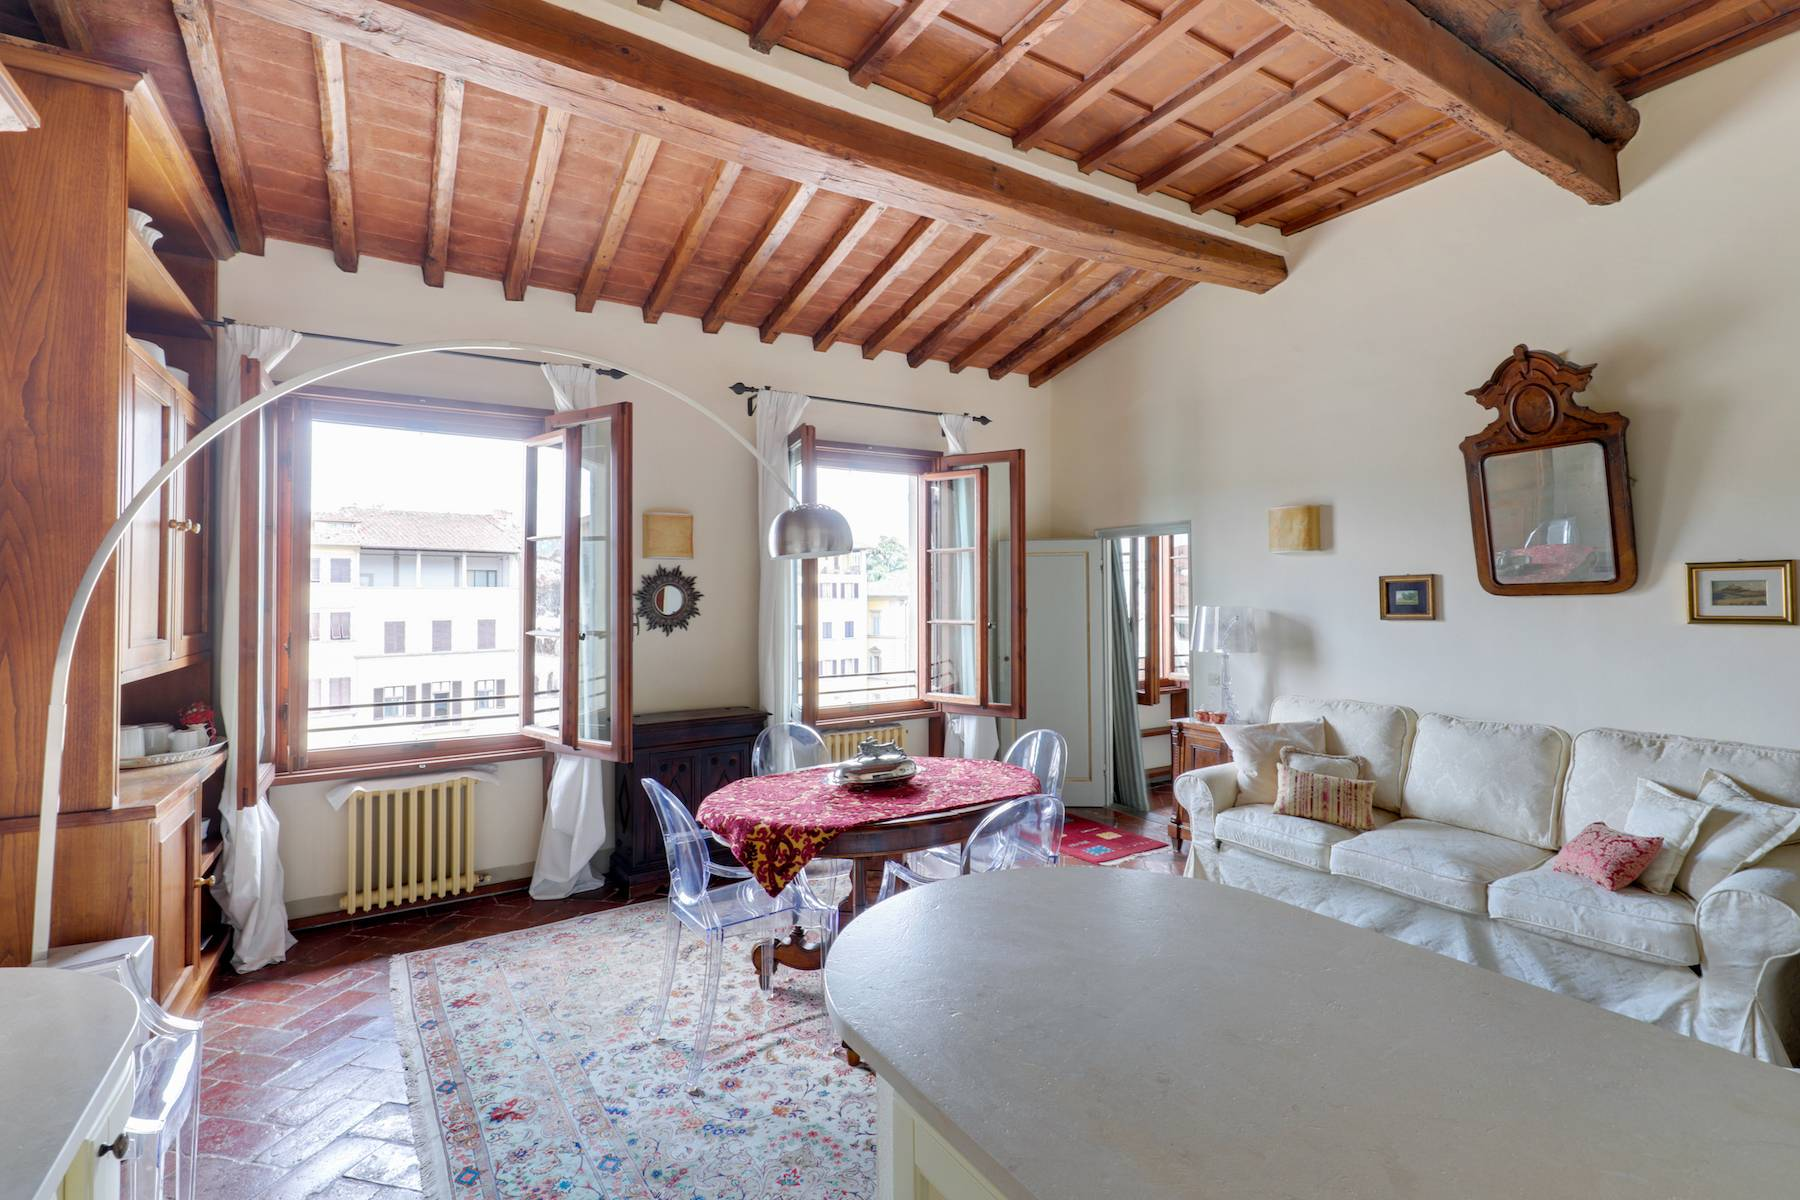 Charming apartment in the heart of Florence - 1